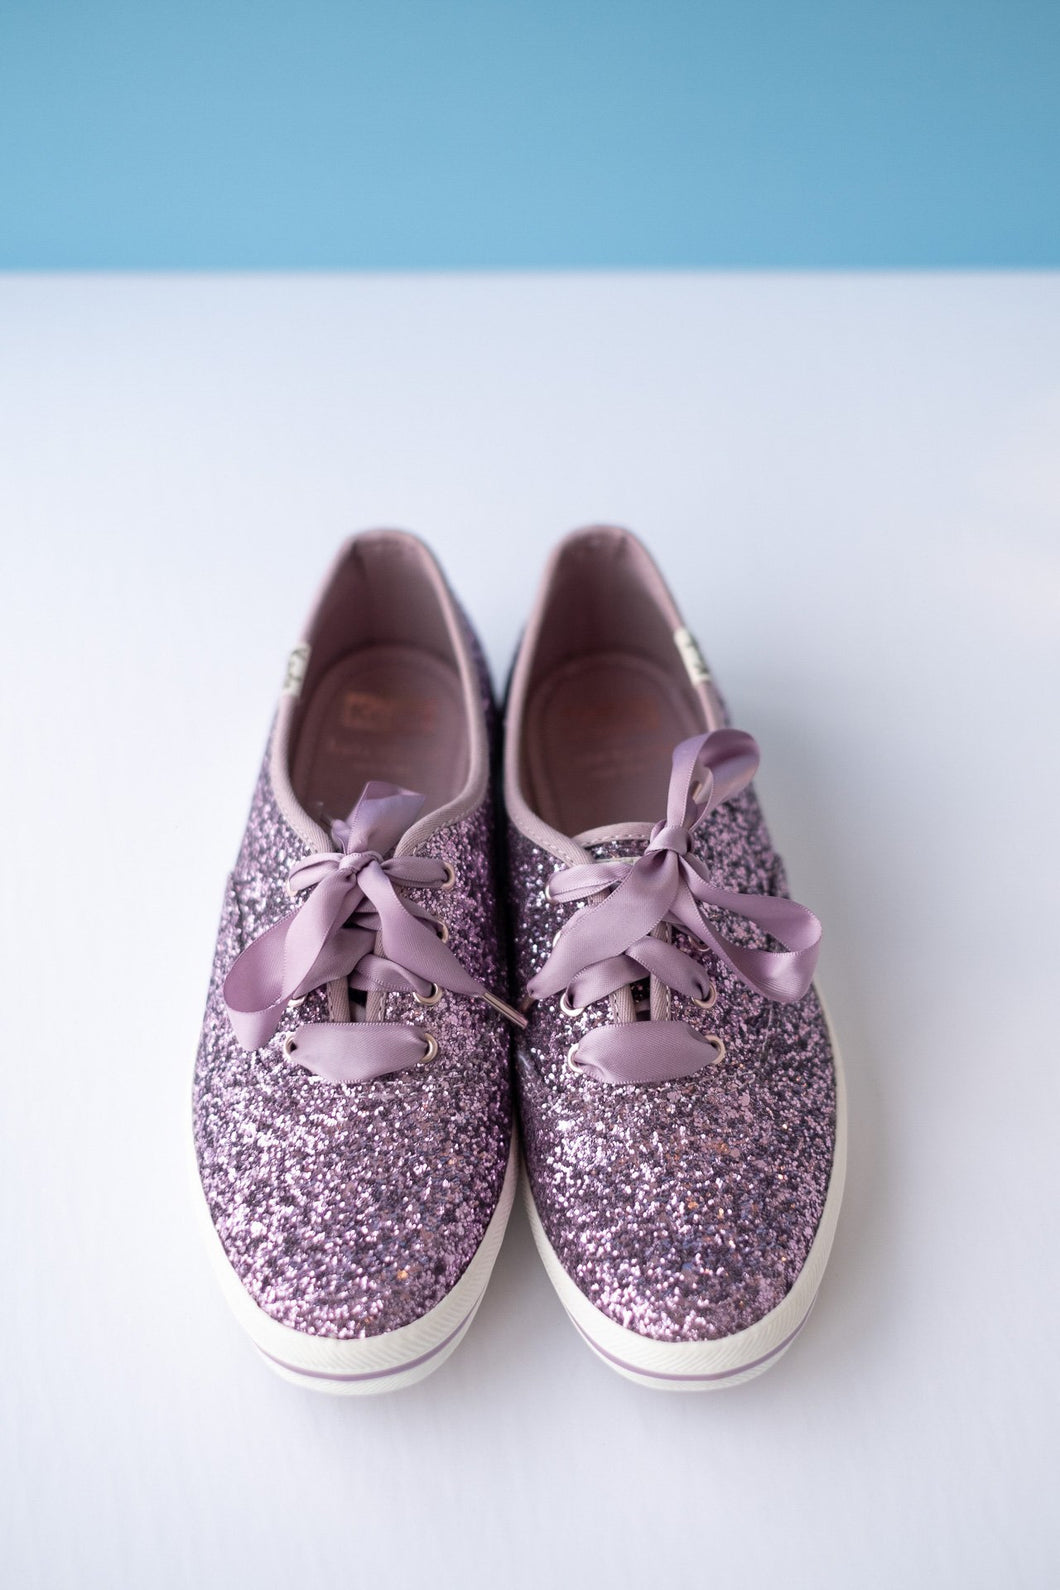 Keds Kate Spade Grape Lace Up Sneaker